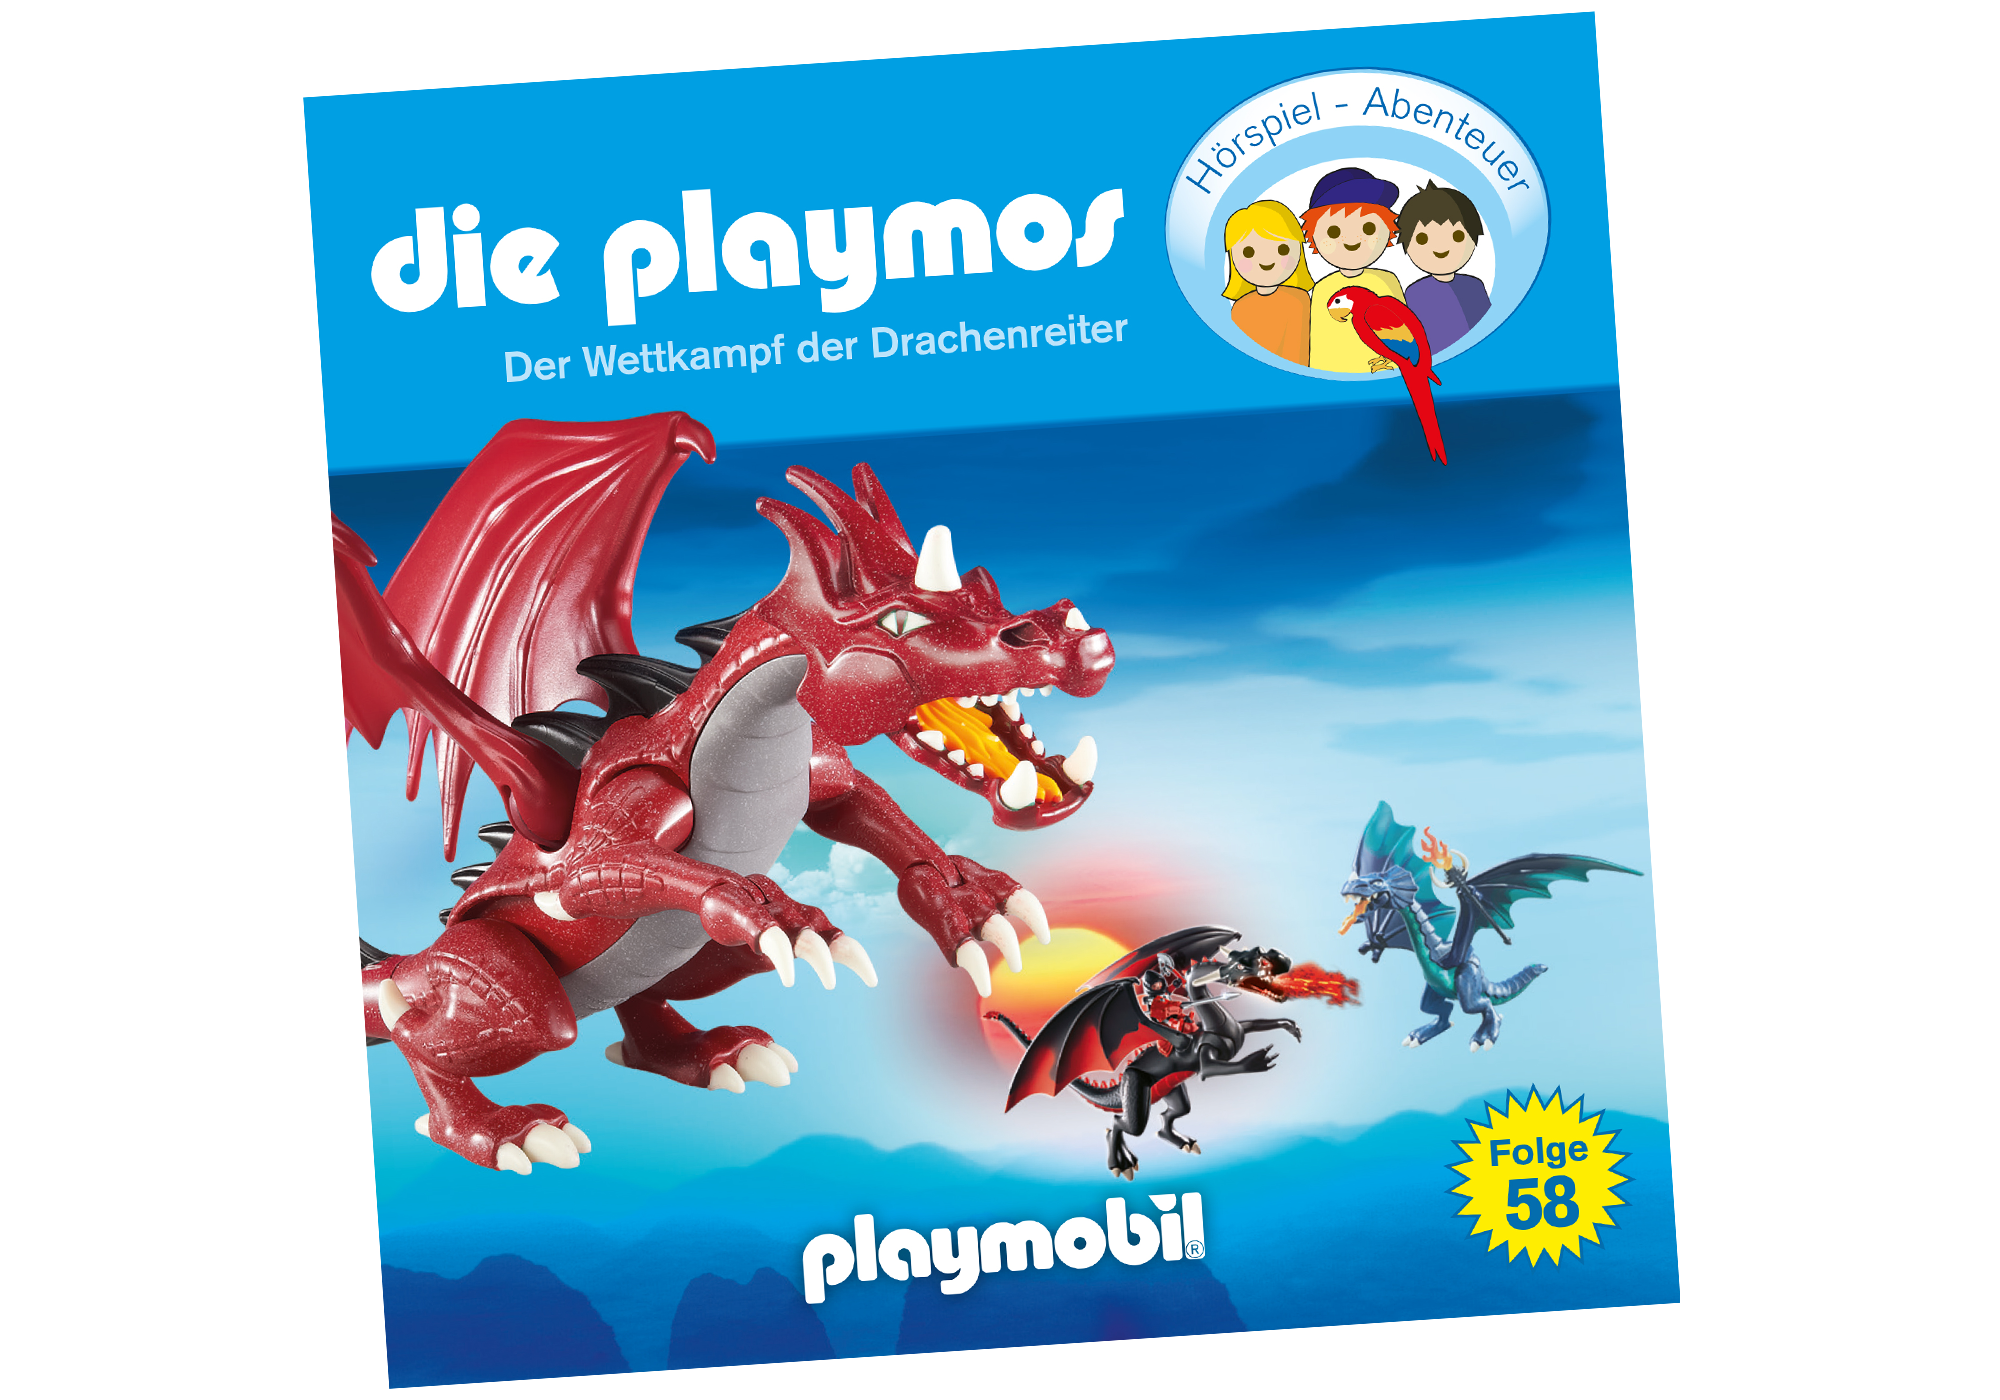 http://media.playmobil.com/i/playmobil/80041_product_detail